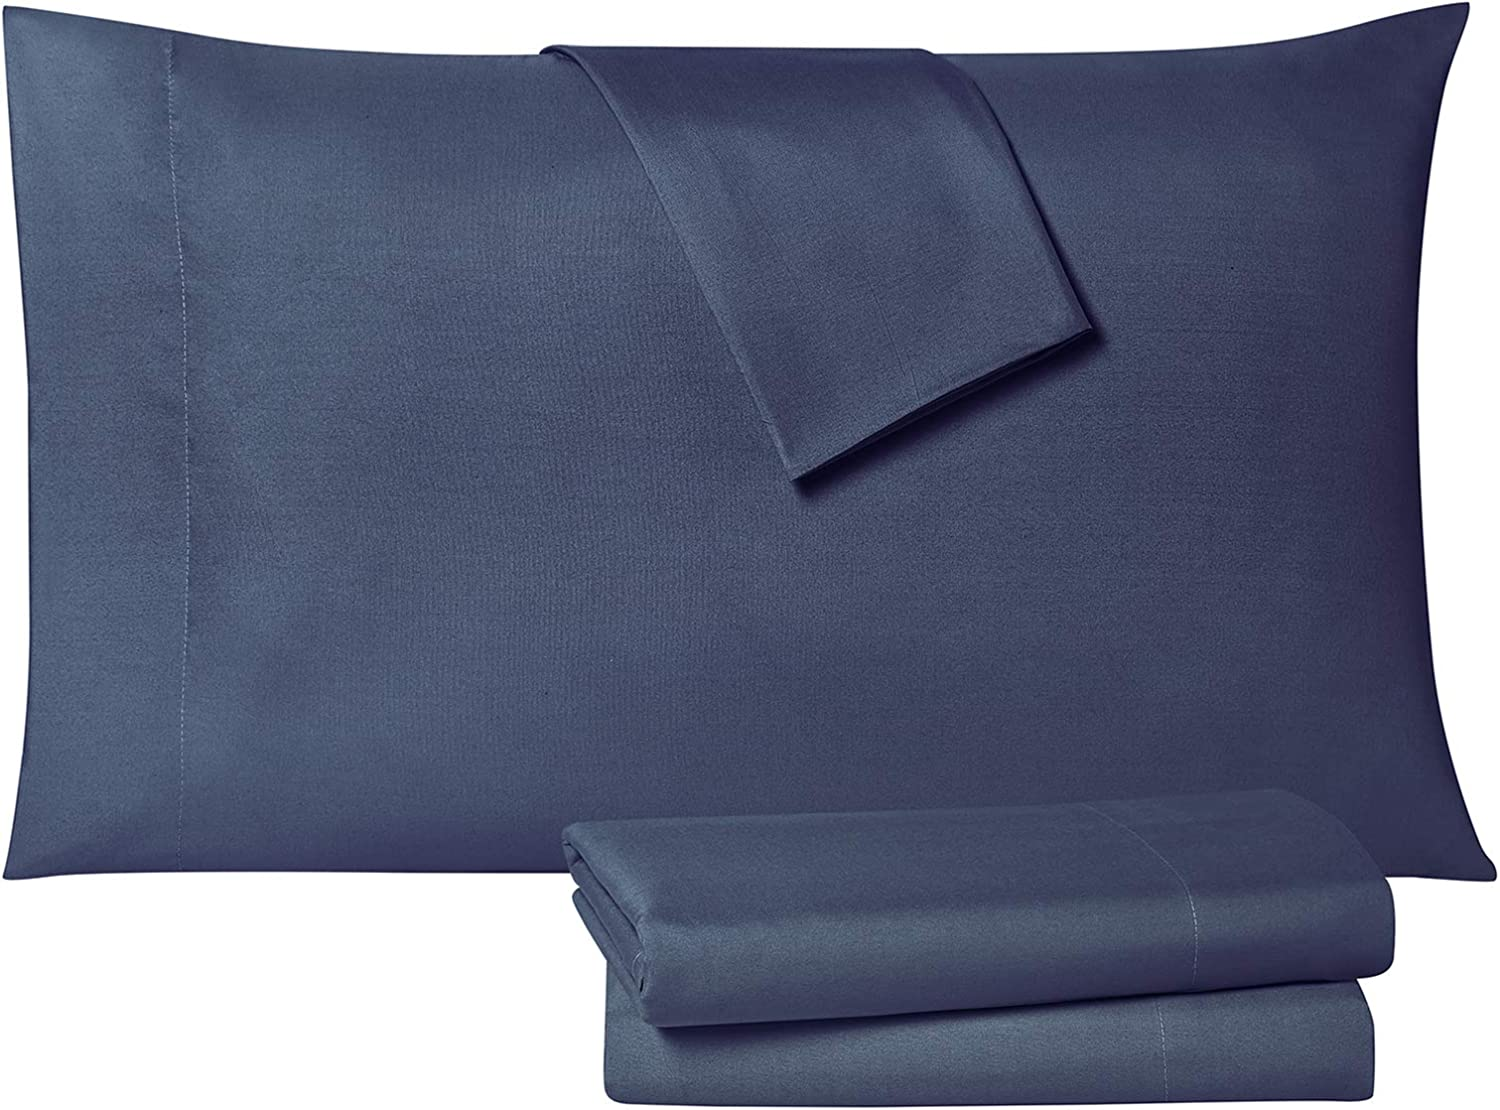 Tahari Home Modern Collection Premium Ultra Soft Lightweight Solid Sheet 6 Piece Set, Wrinkle, Stain Resistant & Hypoallergenic, King, Navy